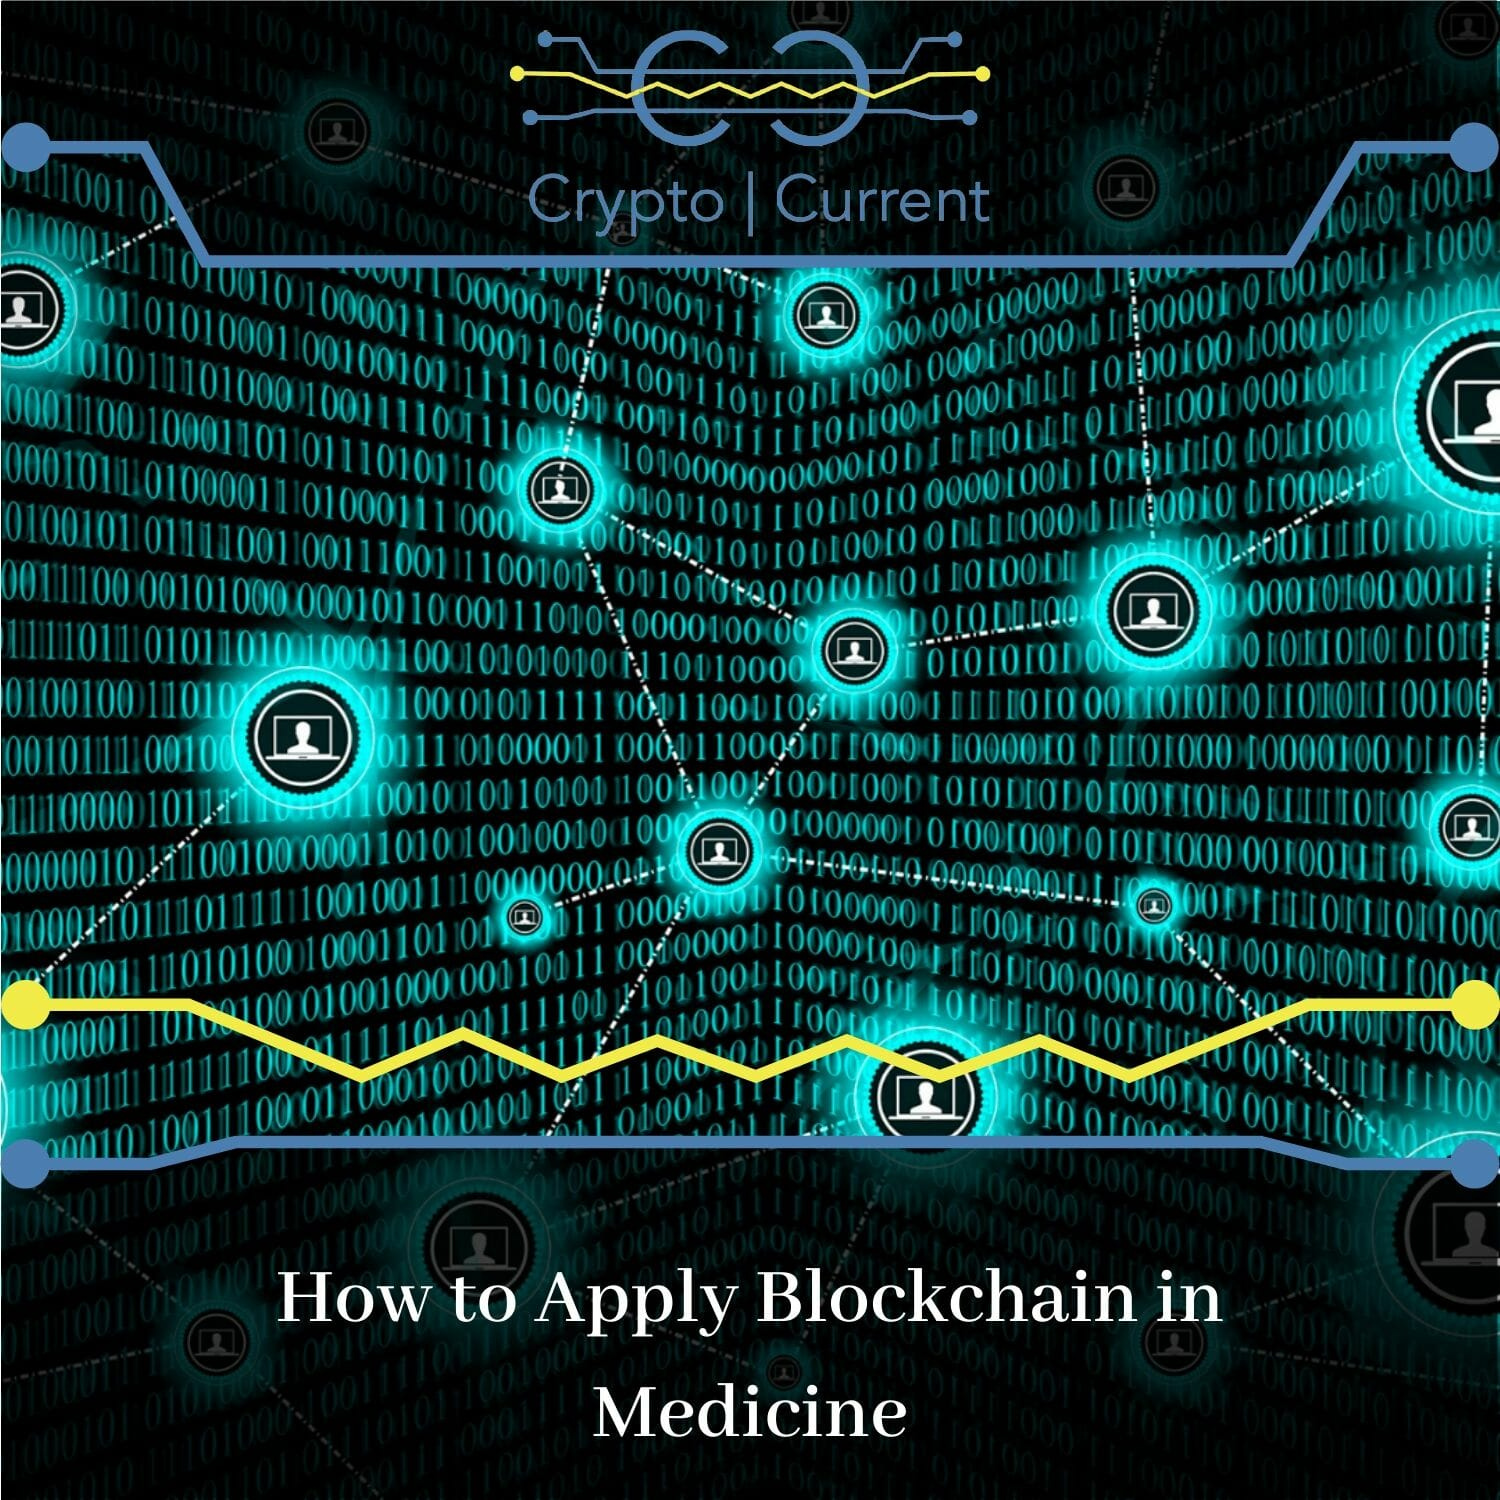 How to apply Blockchain in medicine